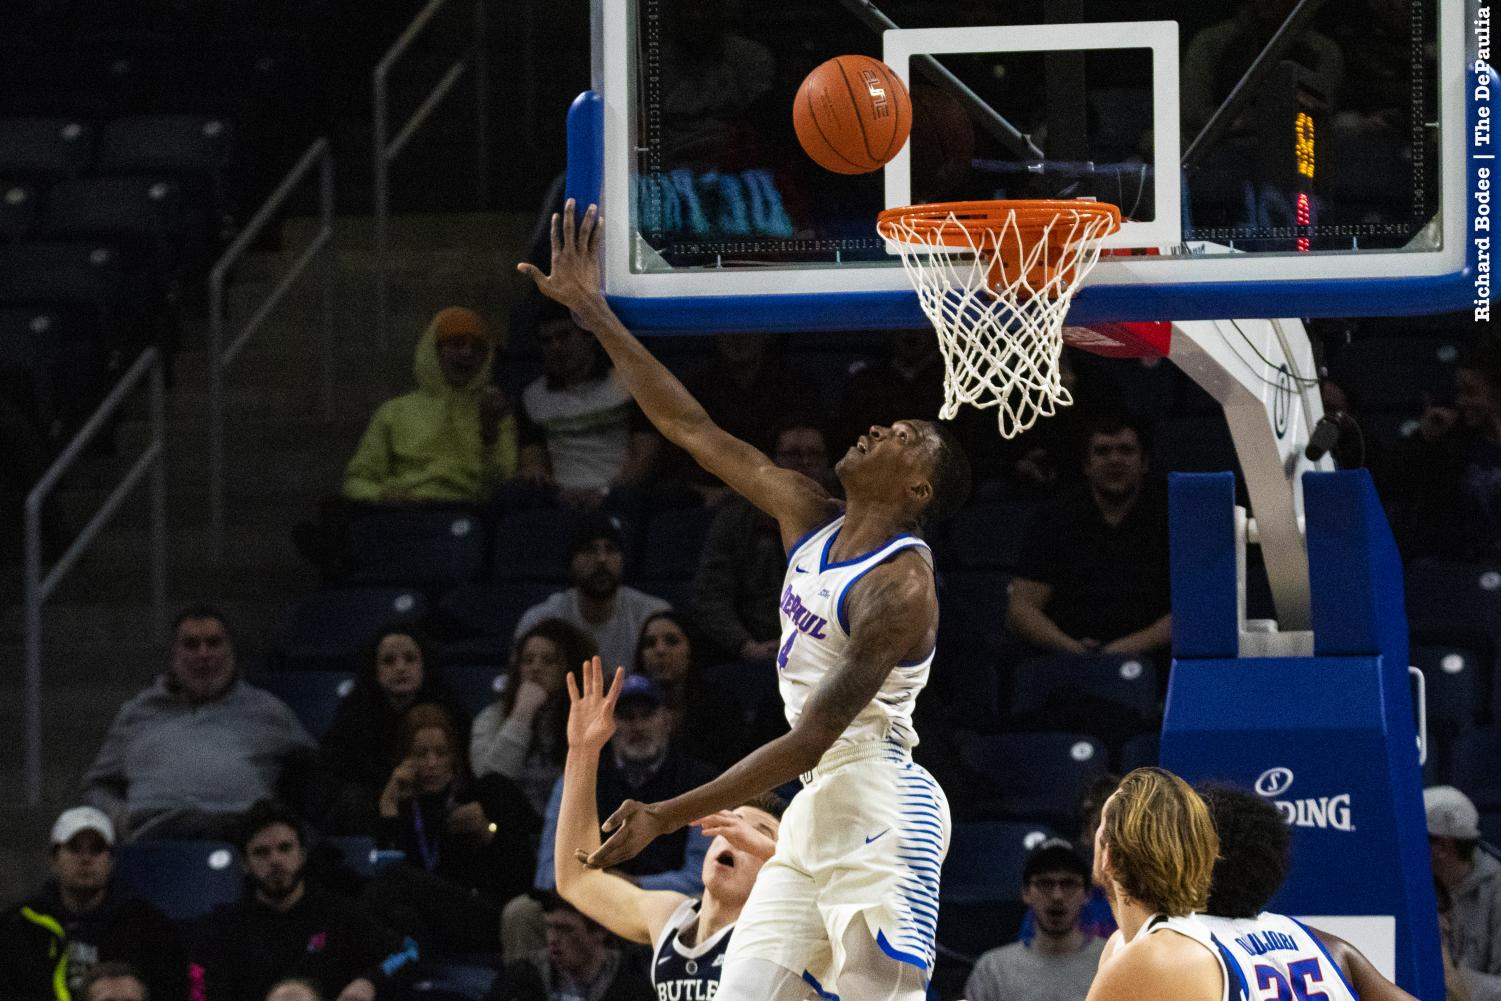 Sophomore+Paul+Reed+tries+to+block+a+shot+during+the+first+half+of+DePaul%27s+loss+to+Butler+Wednesday+night+at+Wintrust+Arena.+Richard+Bodee+%7C+The+DePaulia